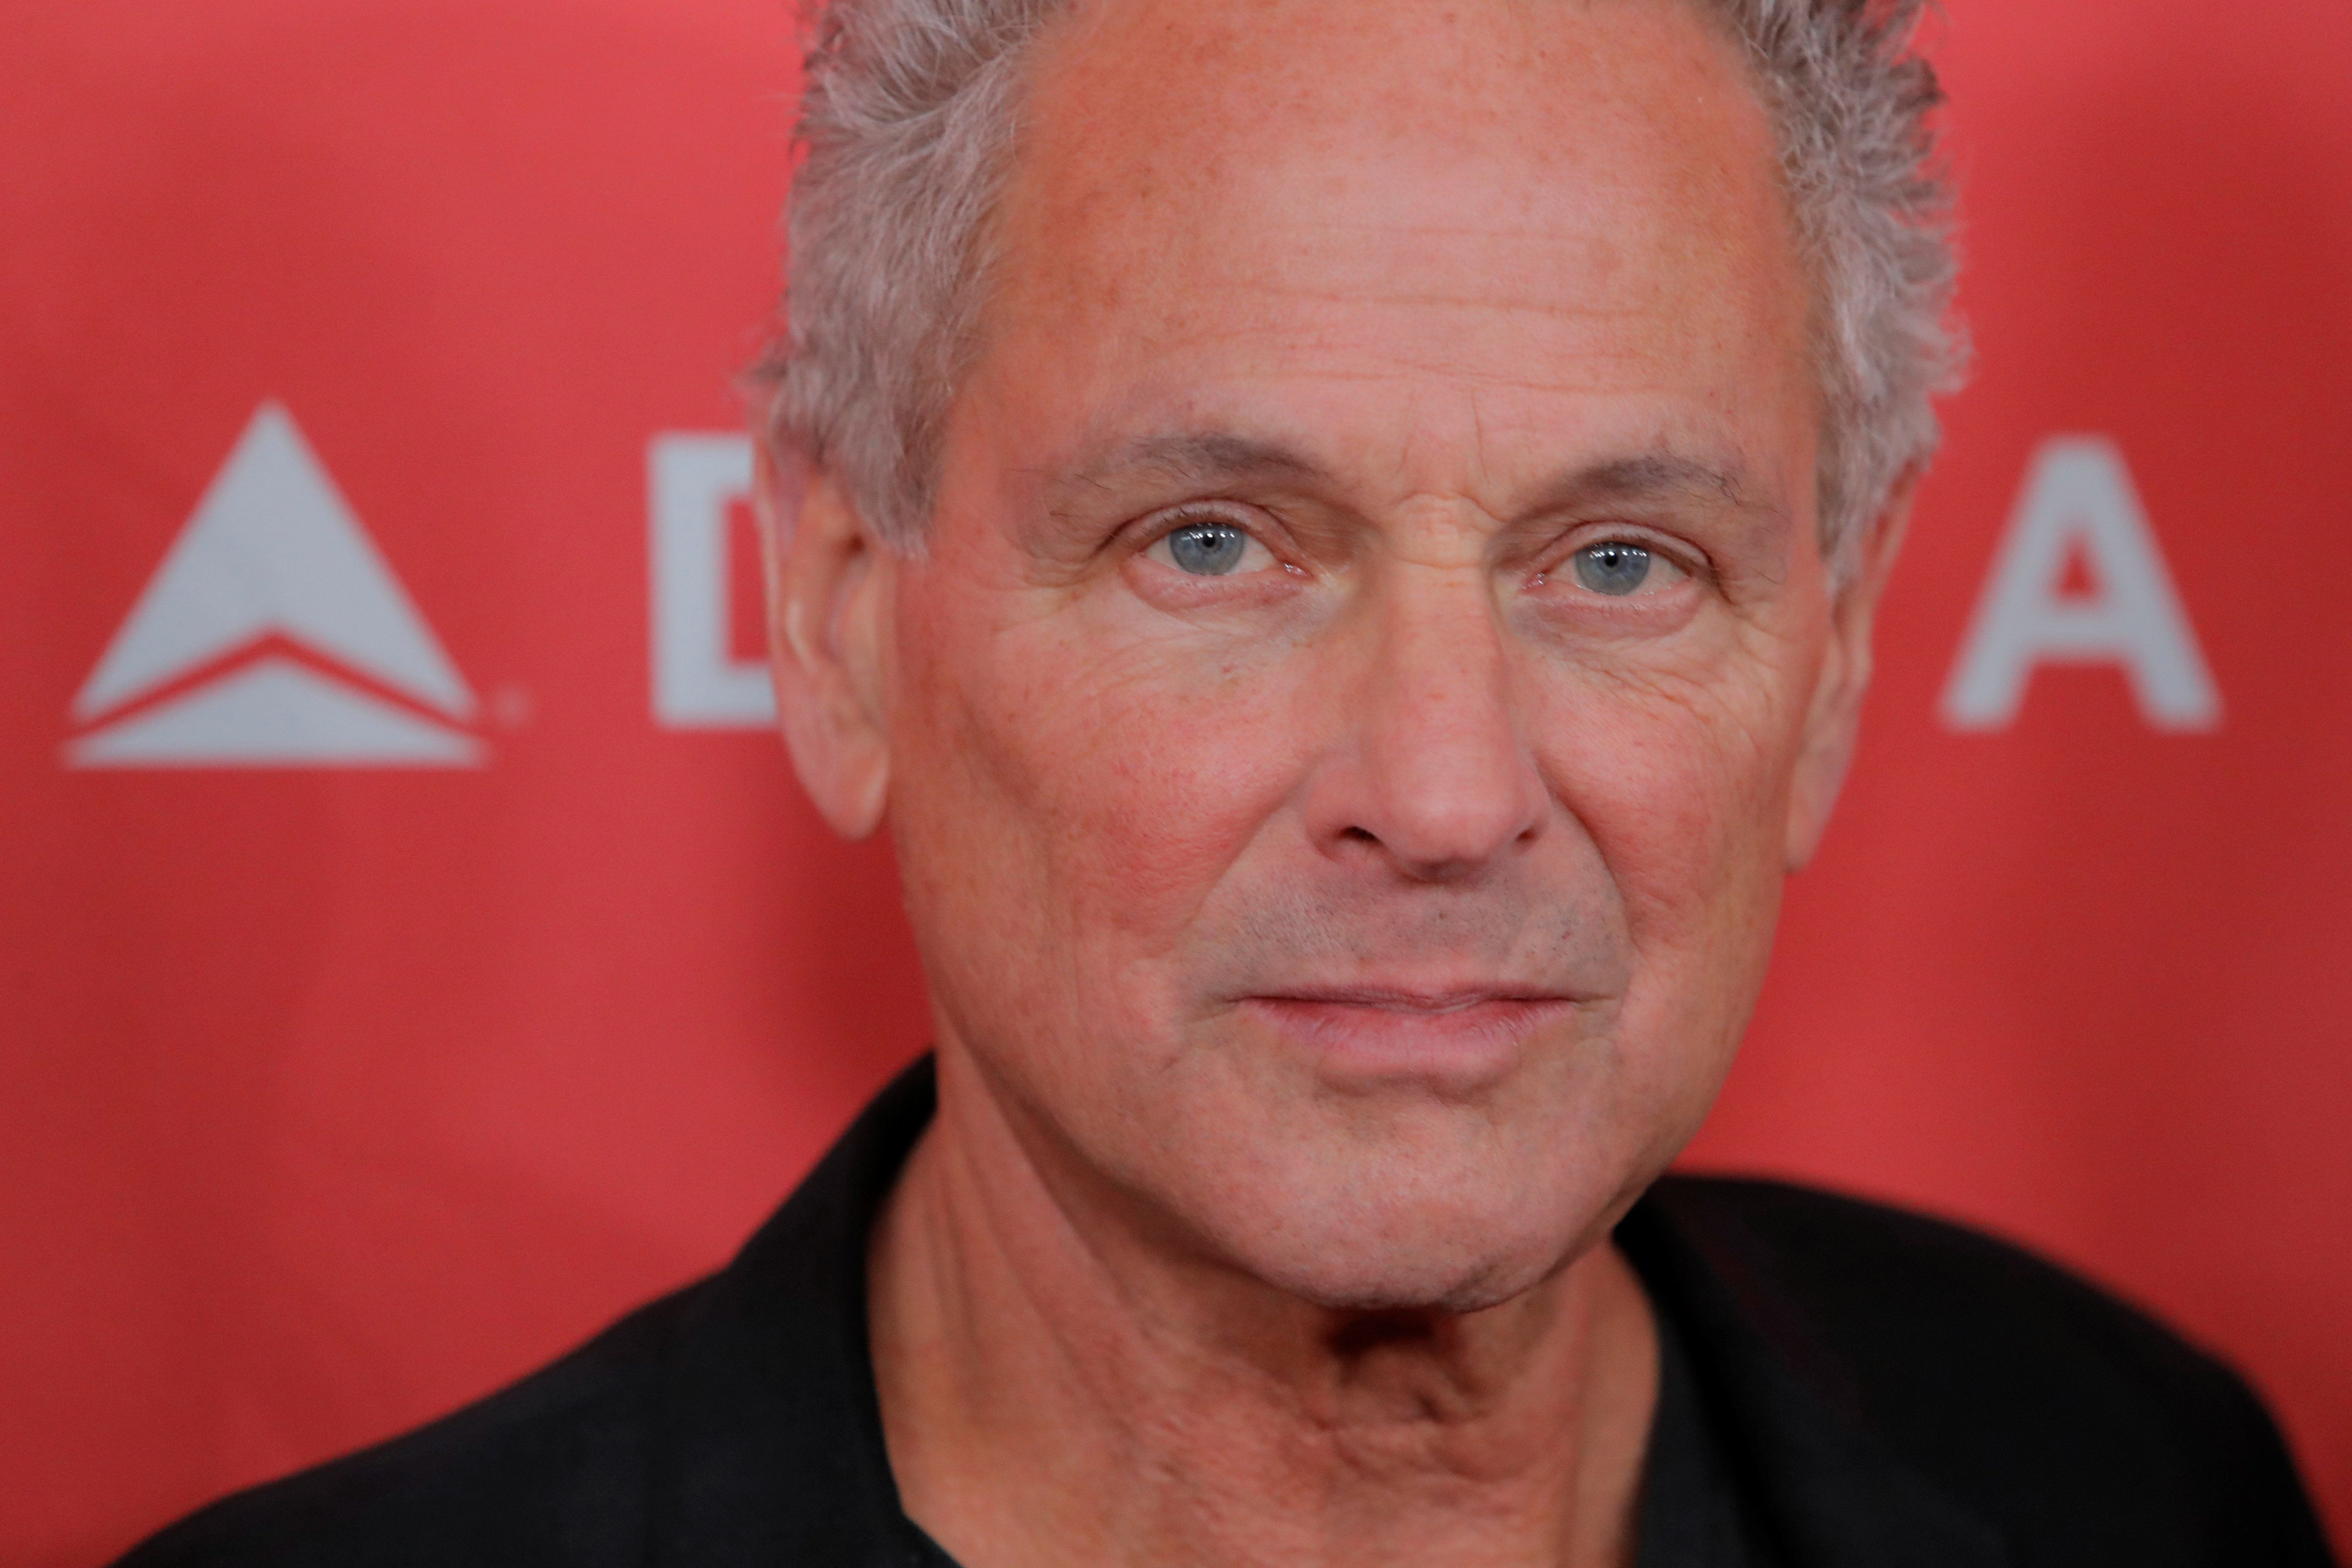 Musician Lindsey Buckingham of Fleetwood Mac arrives to attend the 2018 MusiCares Person of the Year show honoring Fleetwood Mac at Radio City Music Hall in Manhattan, New York, U.S., January 26, 2018.  REUTERS/Andrew Kelly